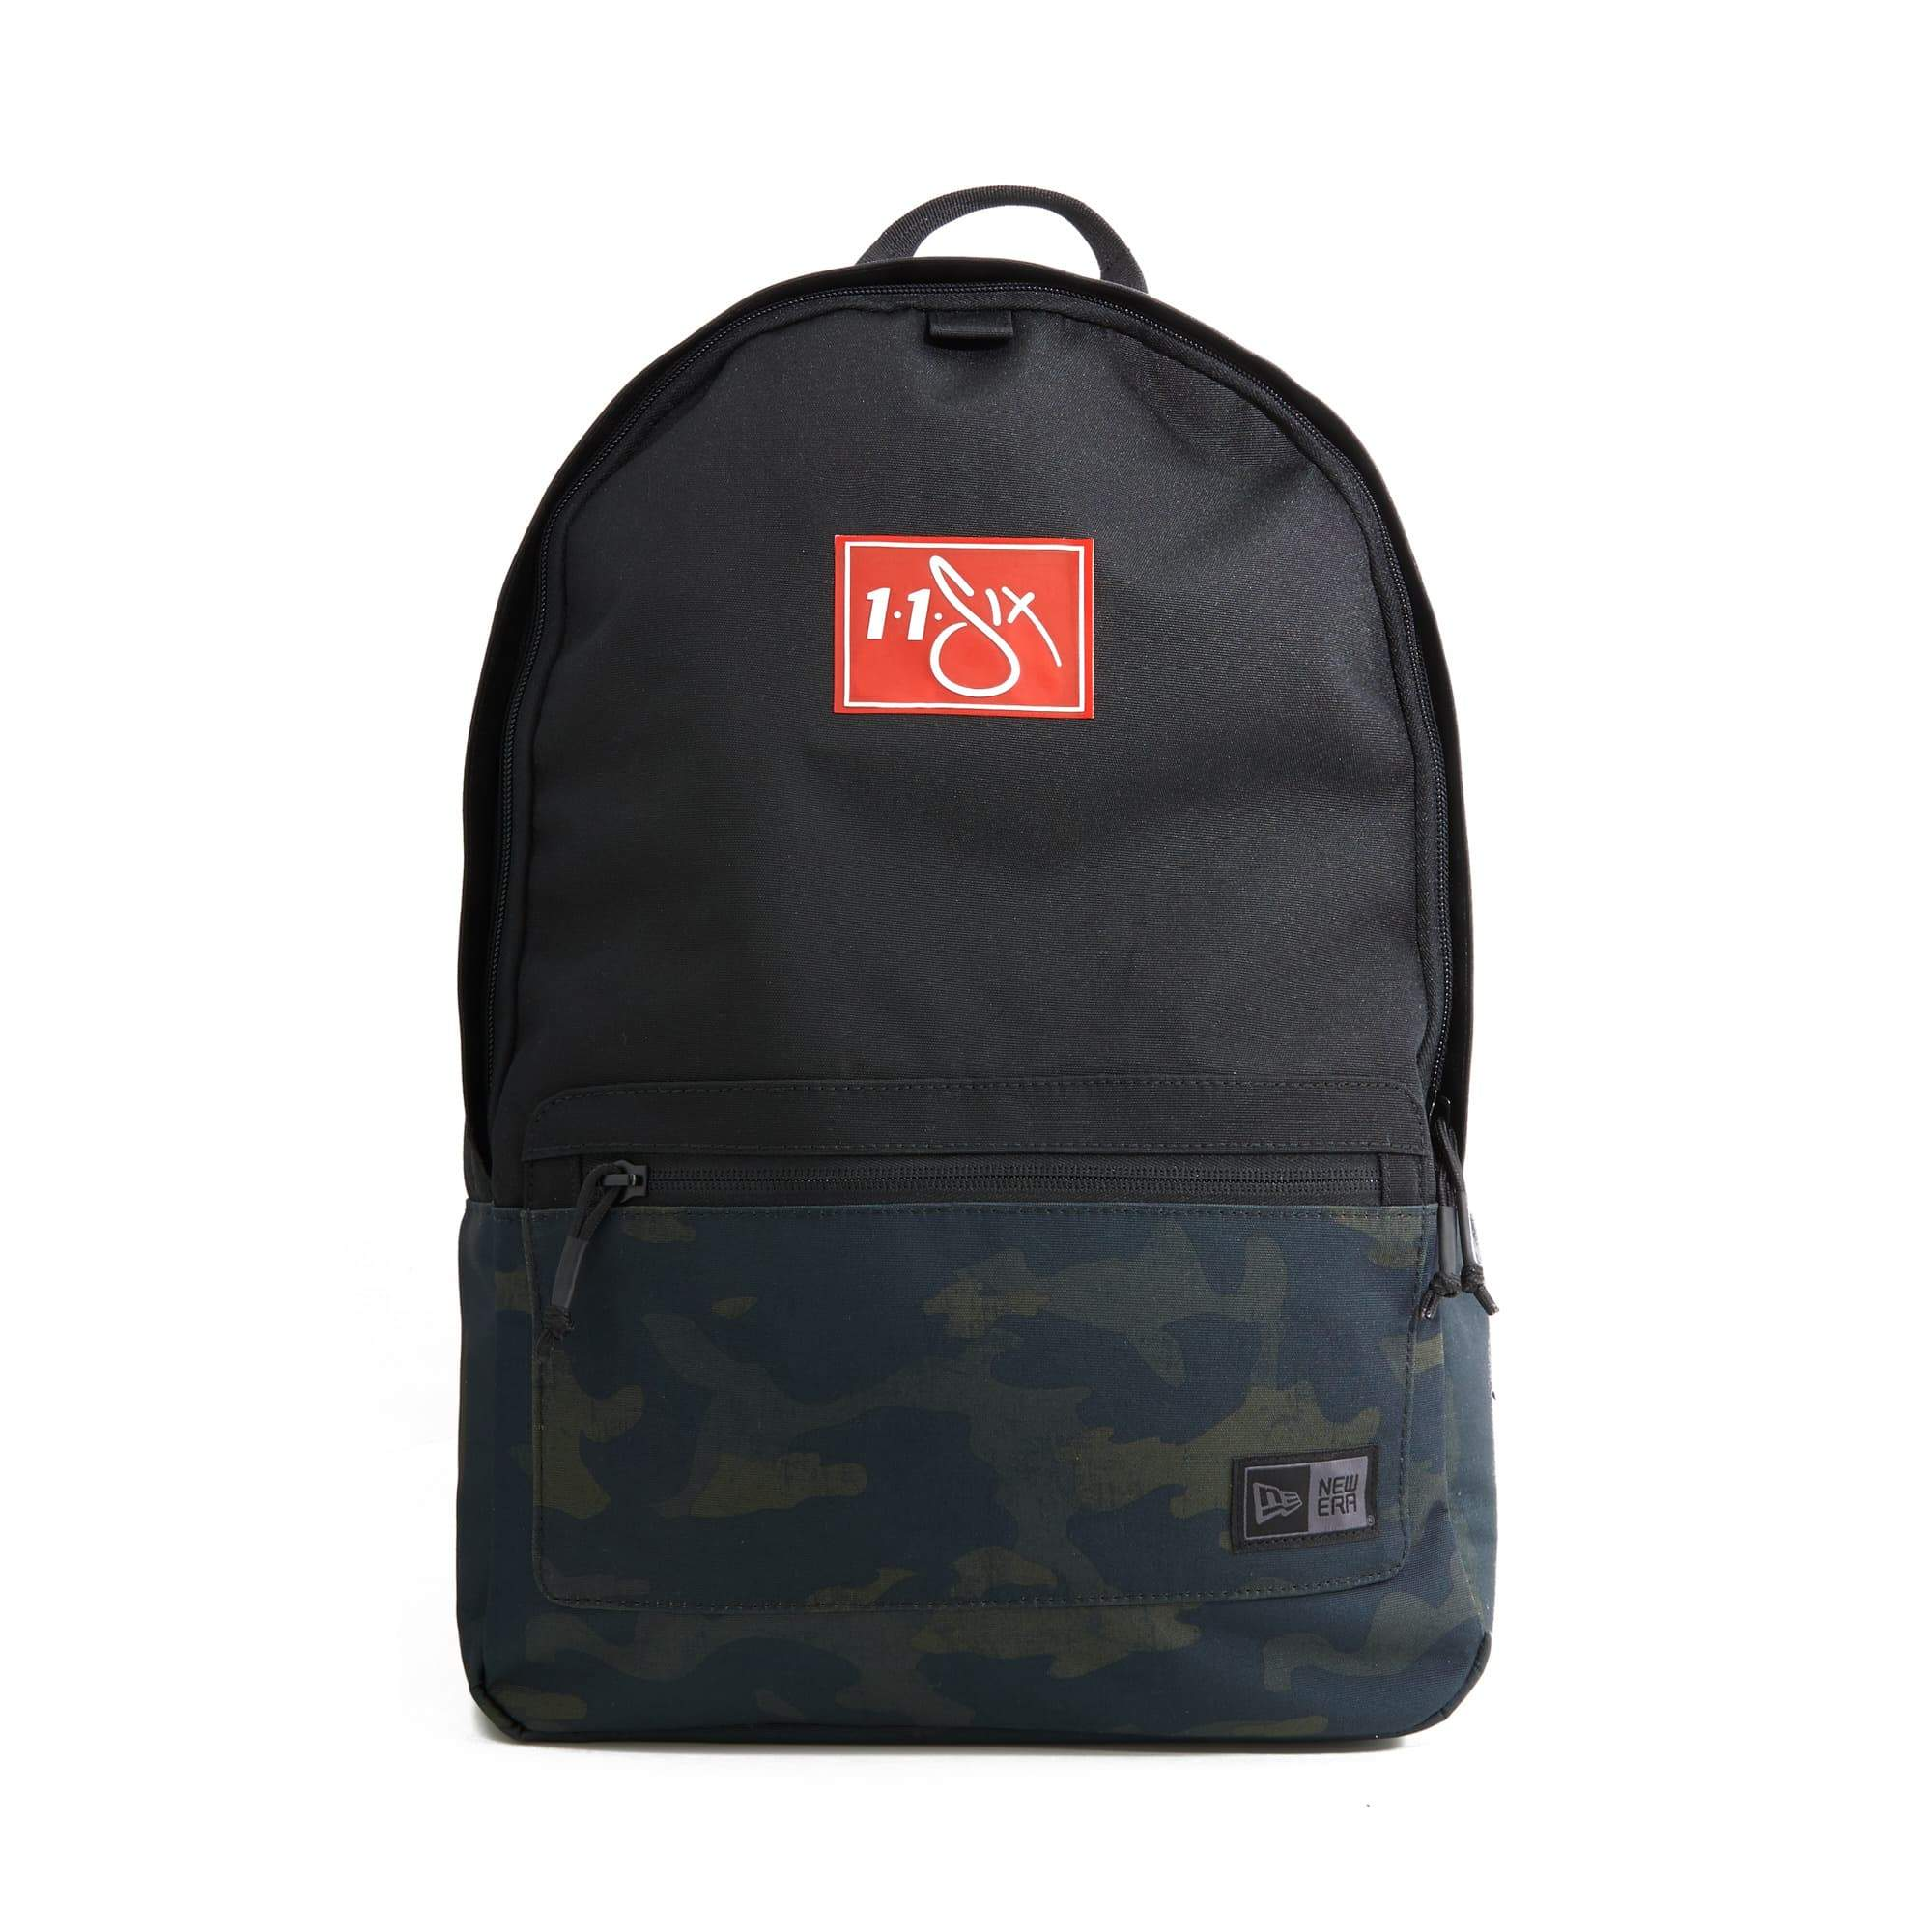 116 x New Era Red Label Backpack